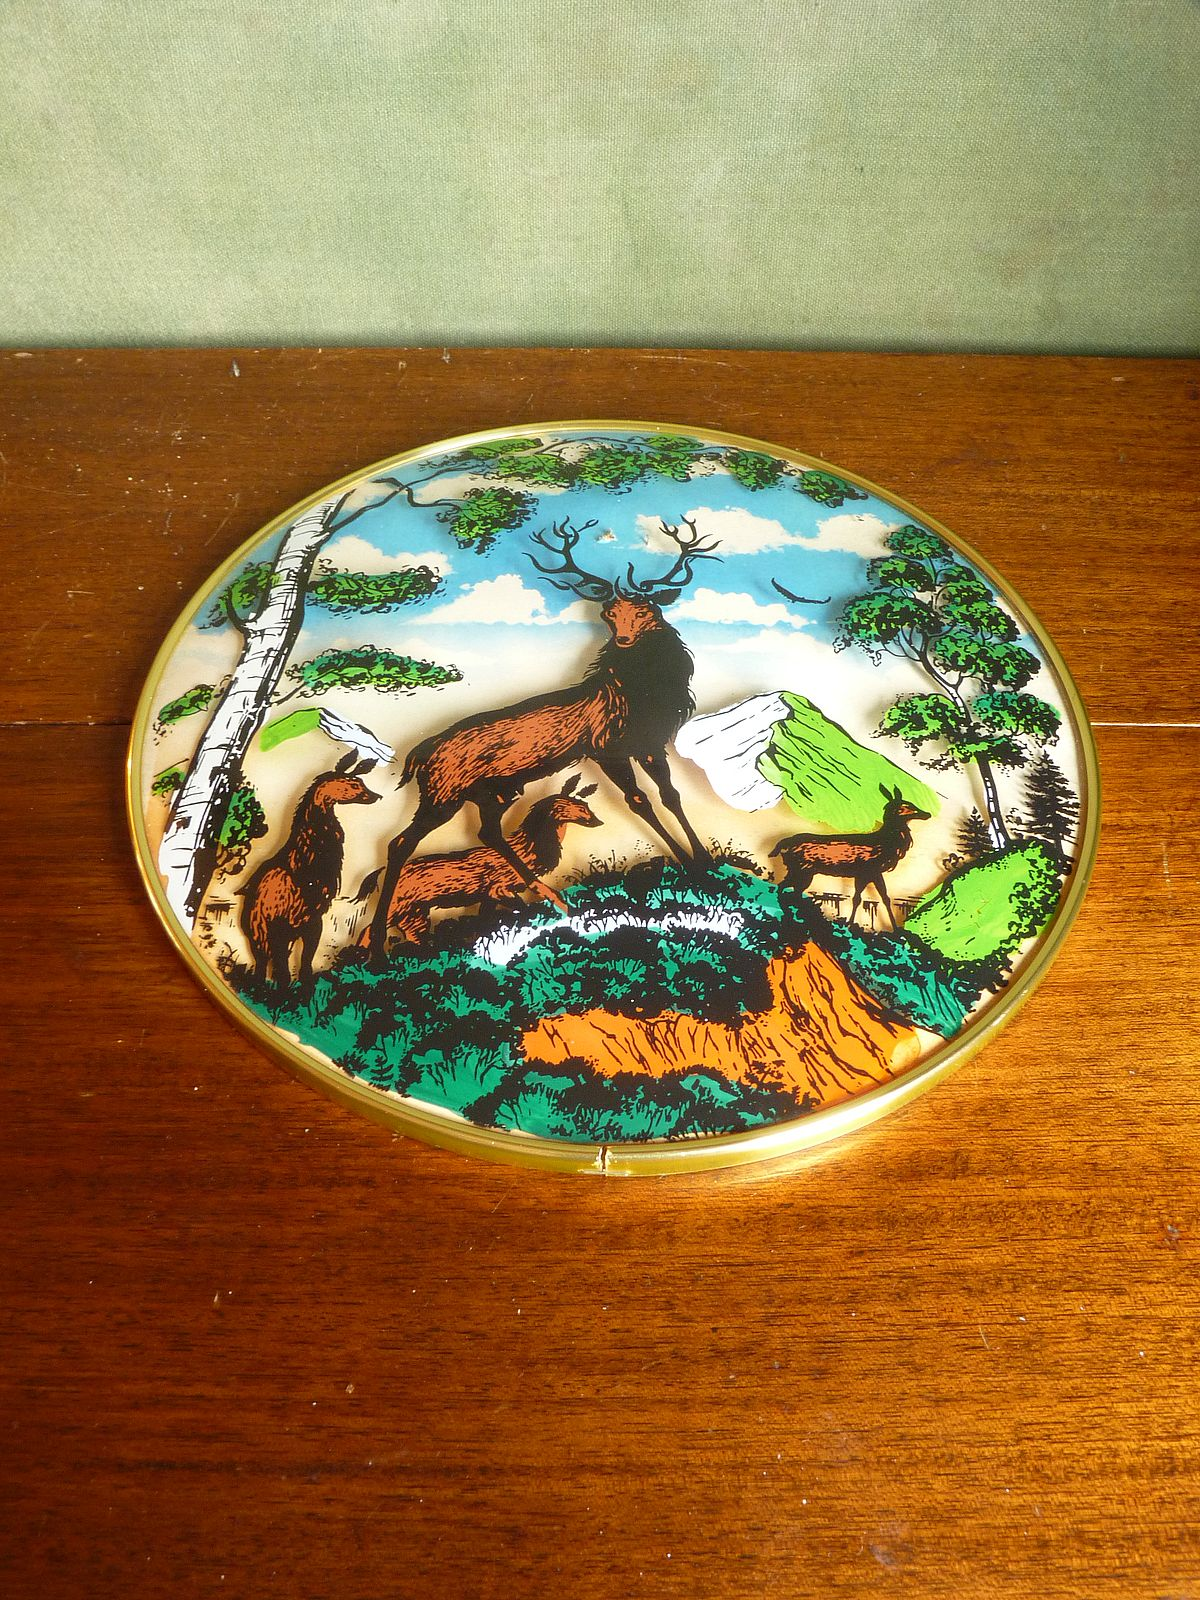 Domed plate with stag